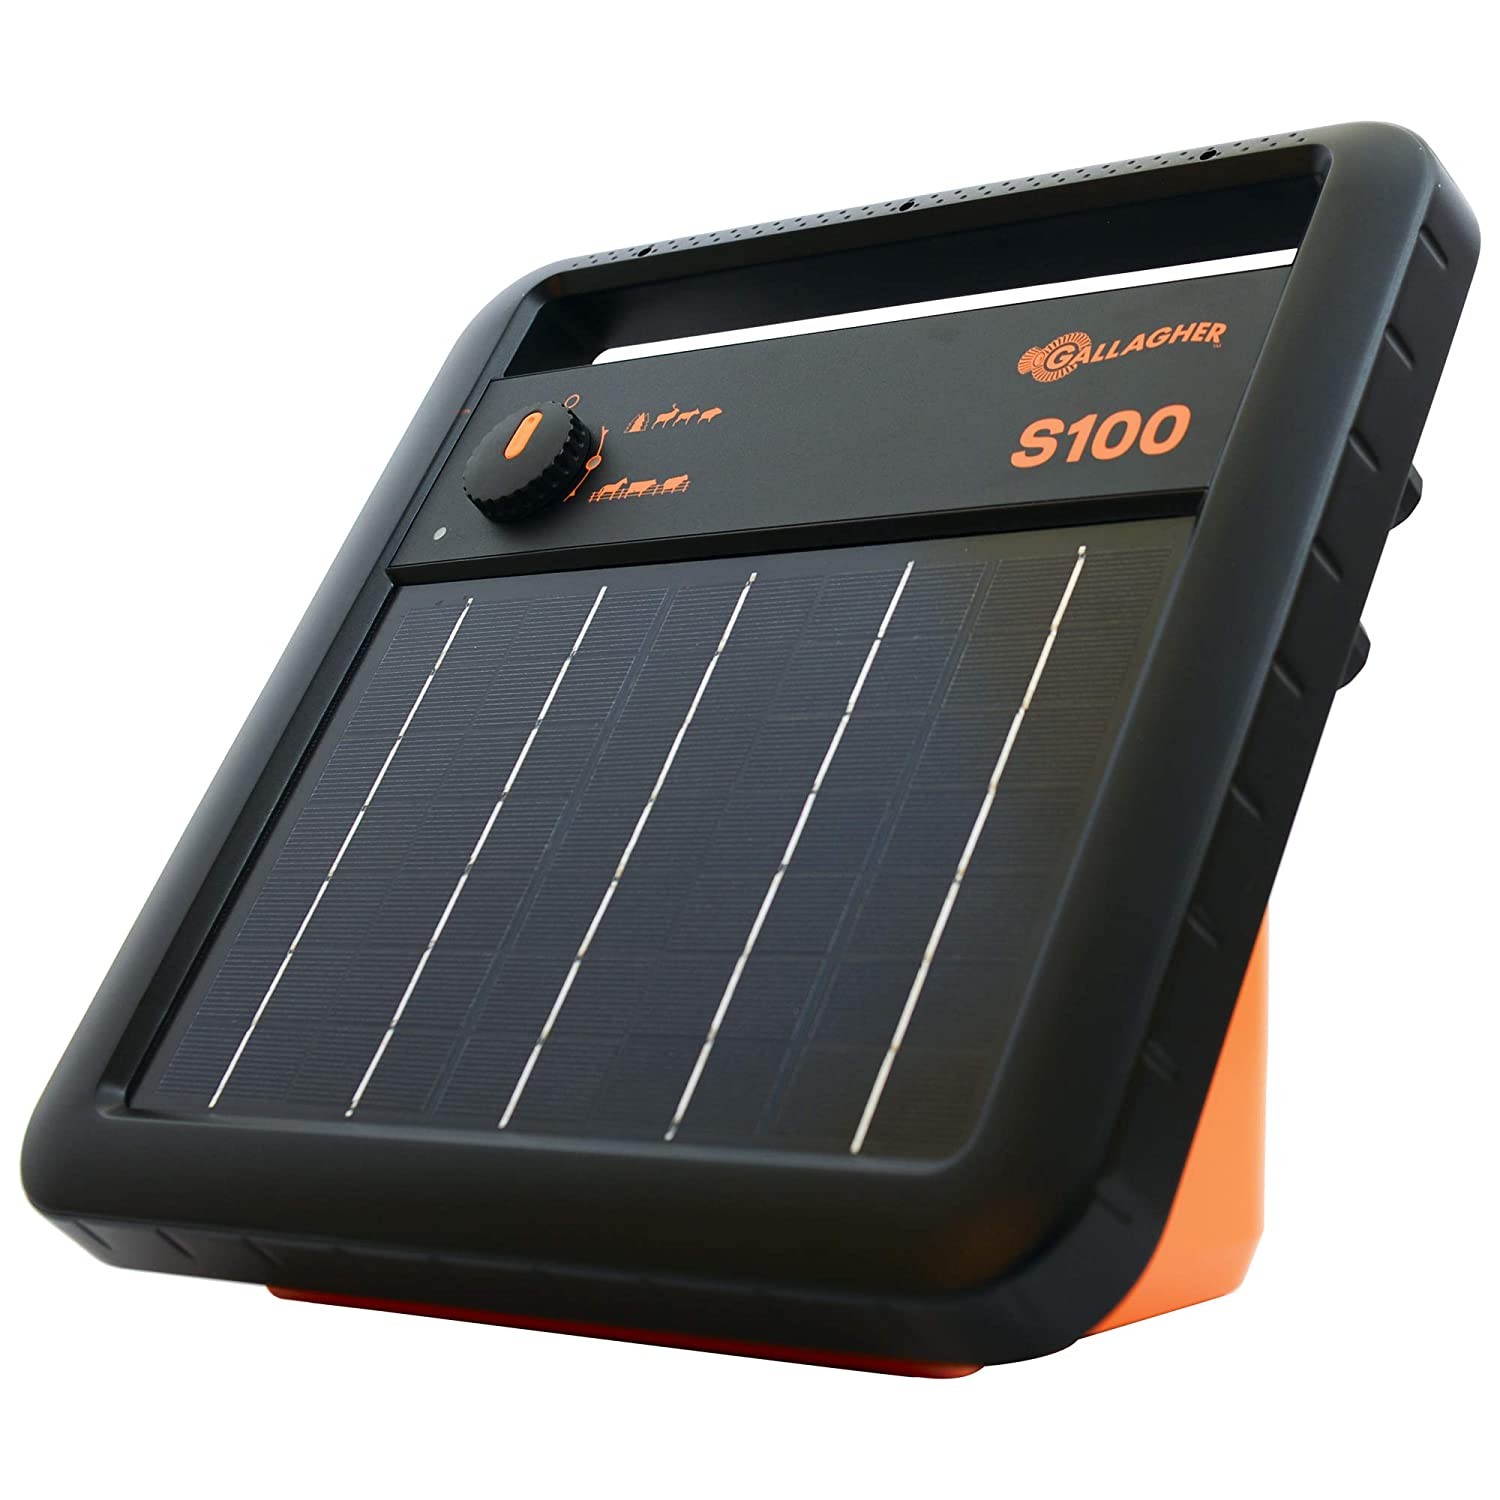 Gallagher S100 Solar Electric Fence Charger